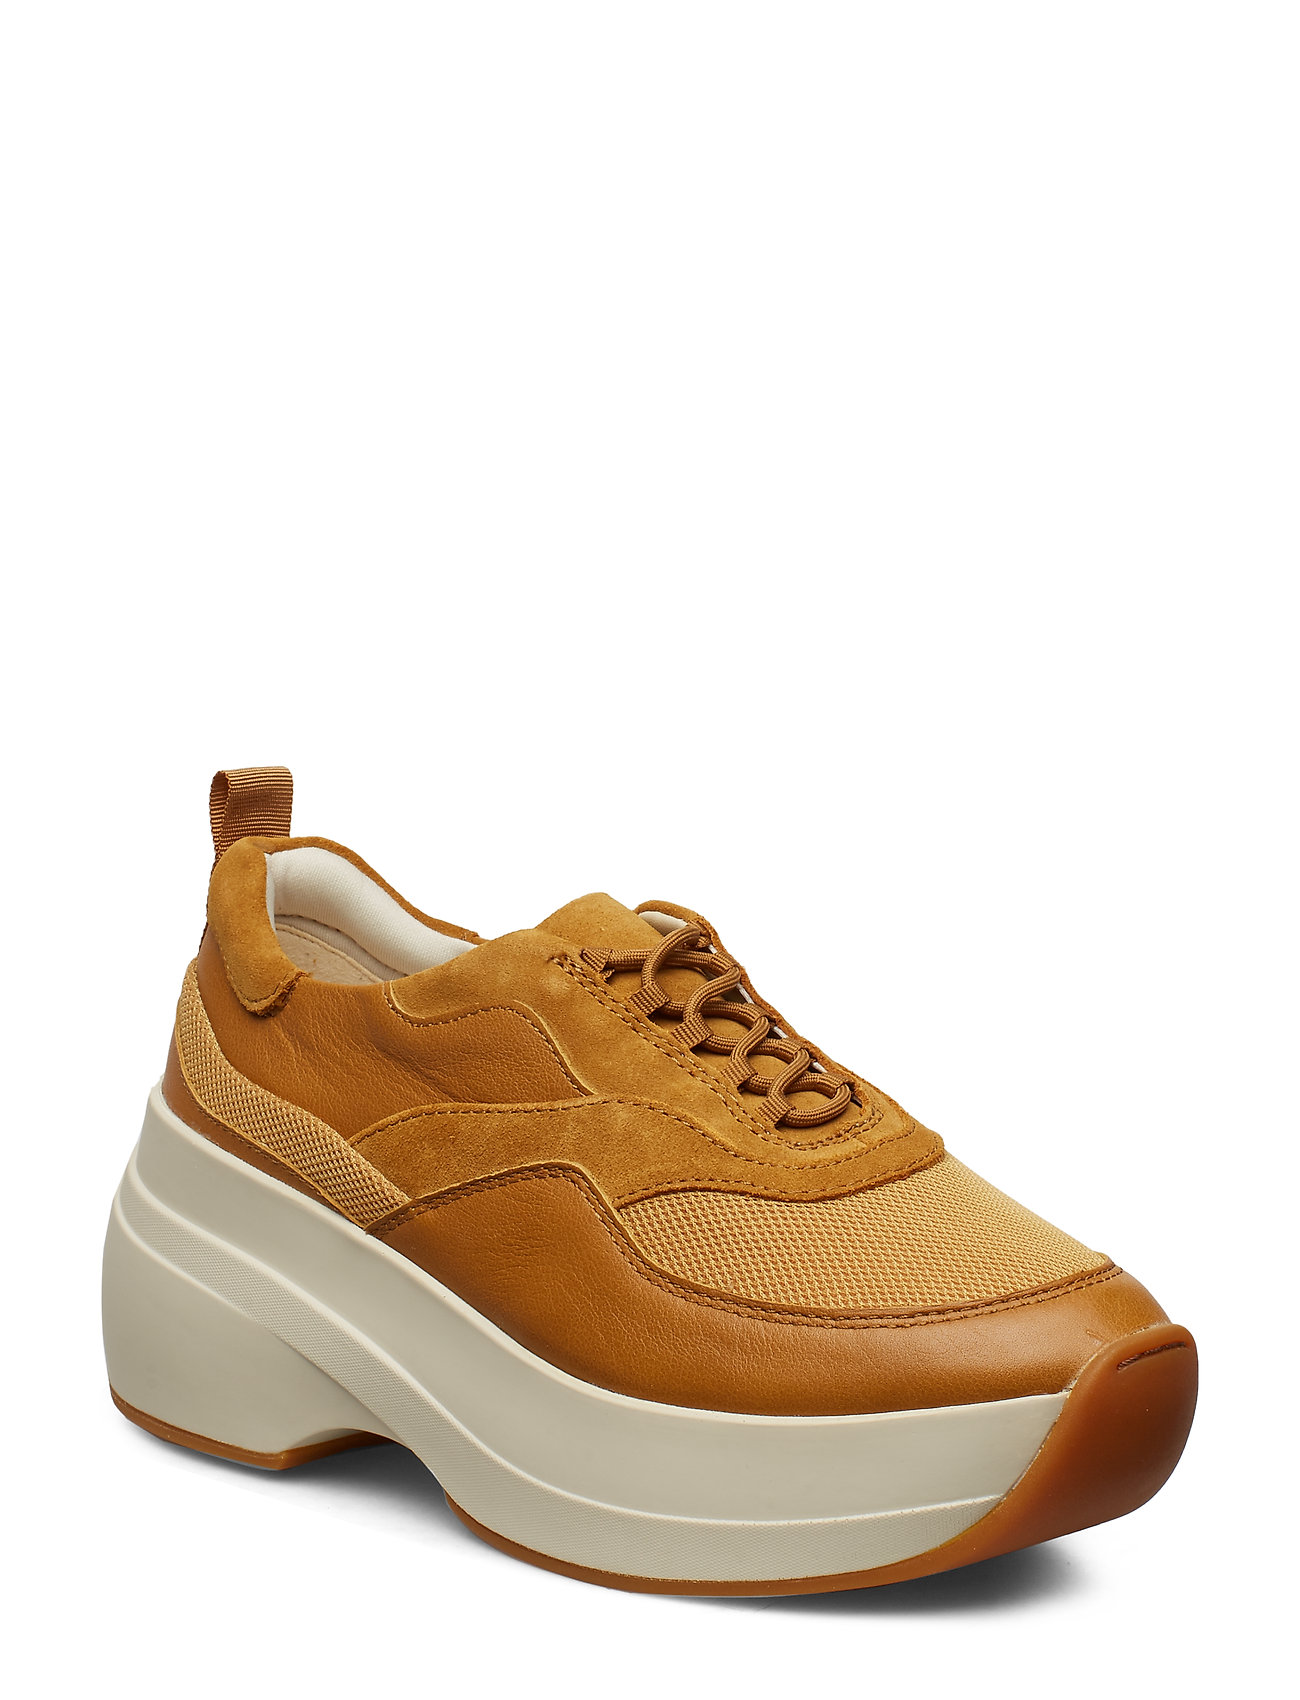 Image of Sprint 2.0 Low-top Sneakers Gul VAGABOND (3452159195)